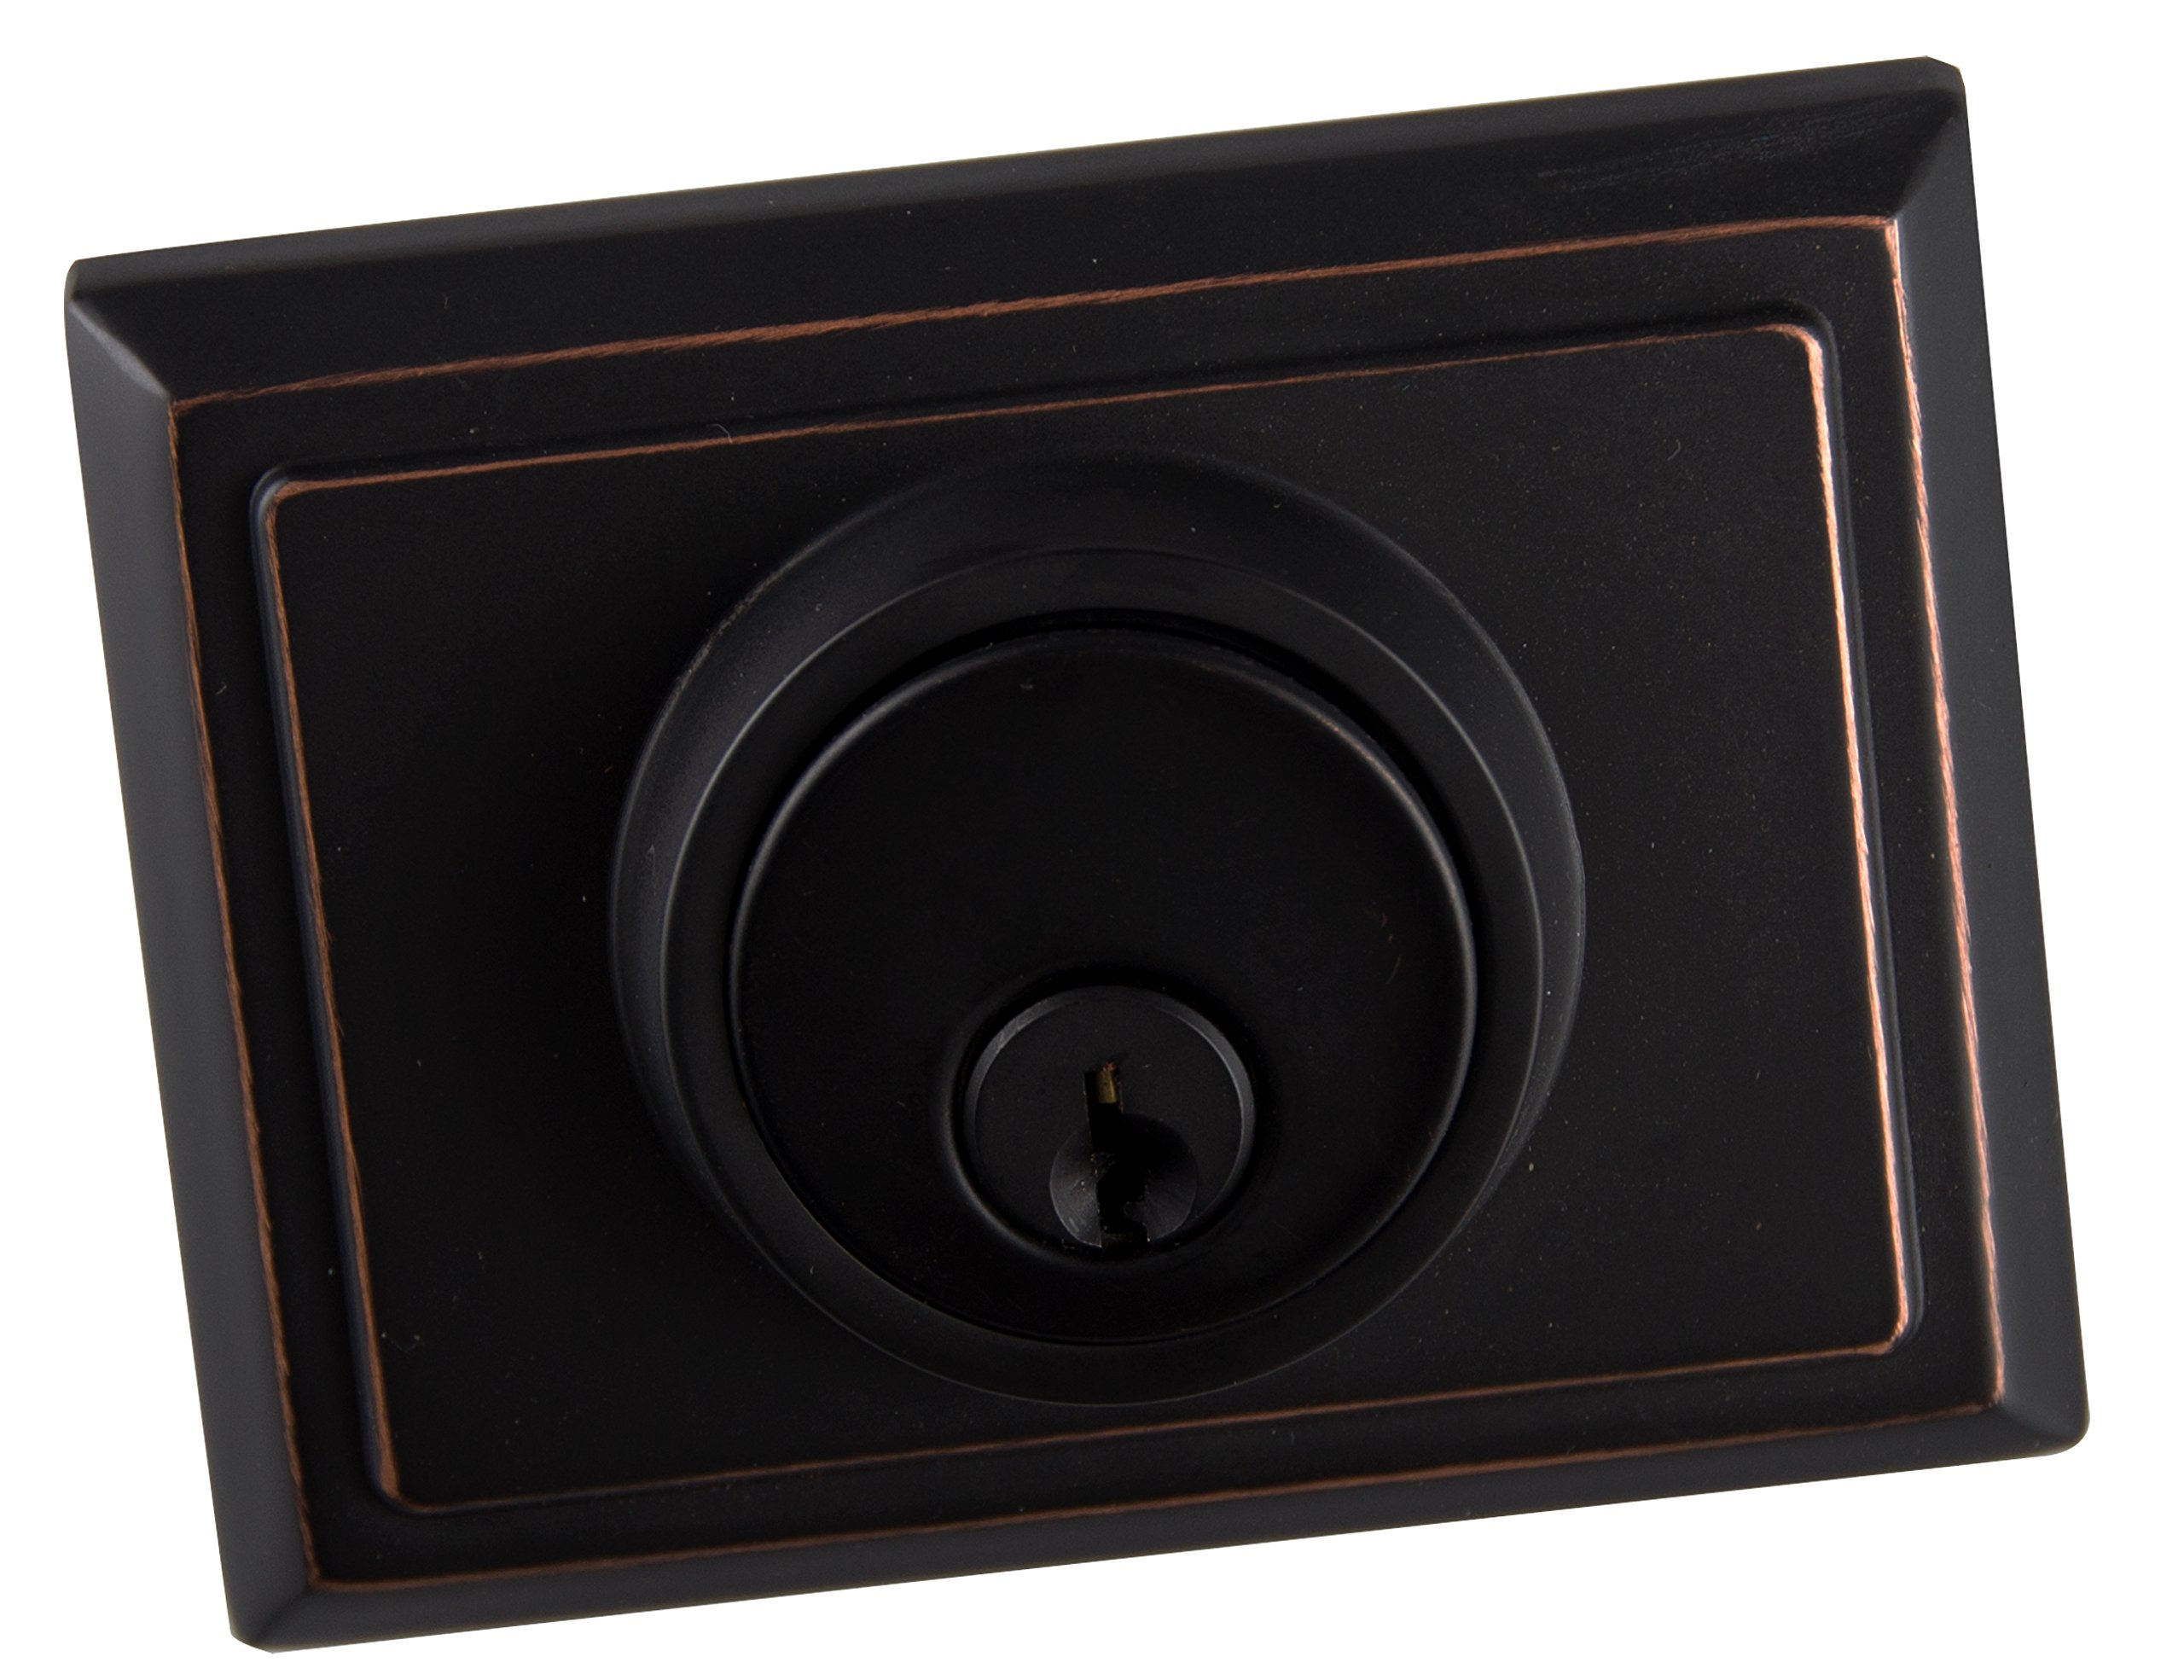 Entry Deadbolt and Handle Single Cylinder Handleset with Knob Handle for Back Entrance and Front Door Reversible for Right and Left Handed Oil Rubbed Bronze Finish, MDHST201310B-AMZ-2 by TMC (Image #5)